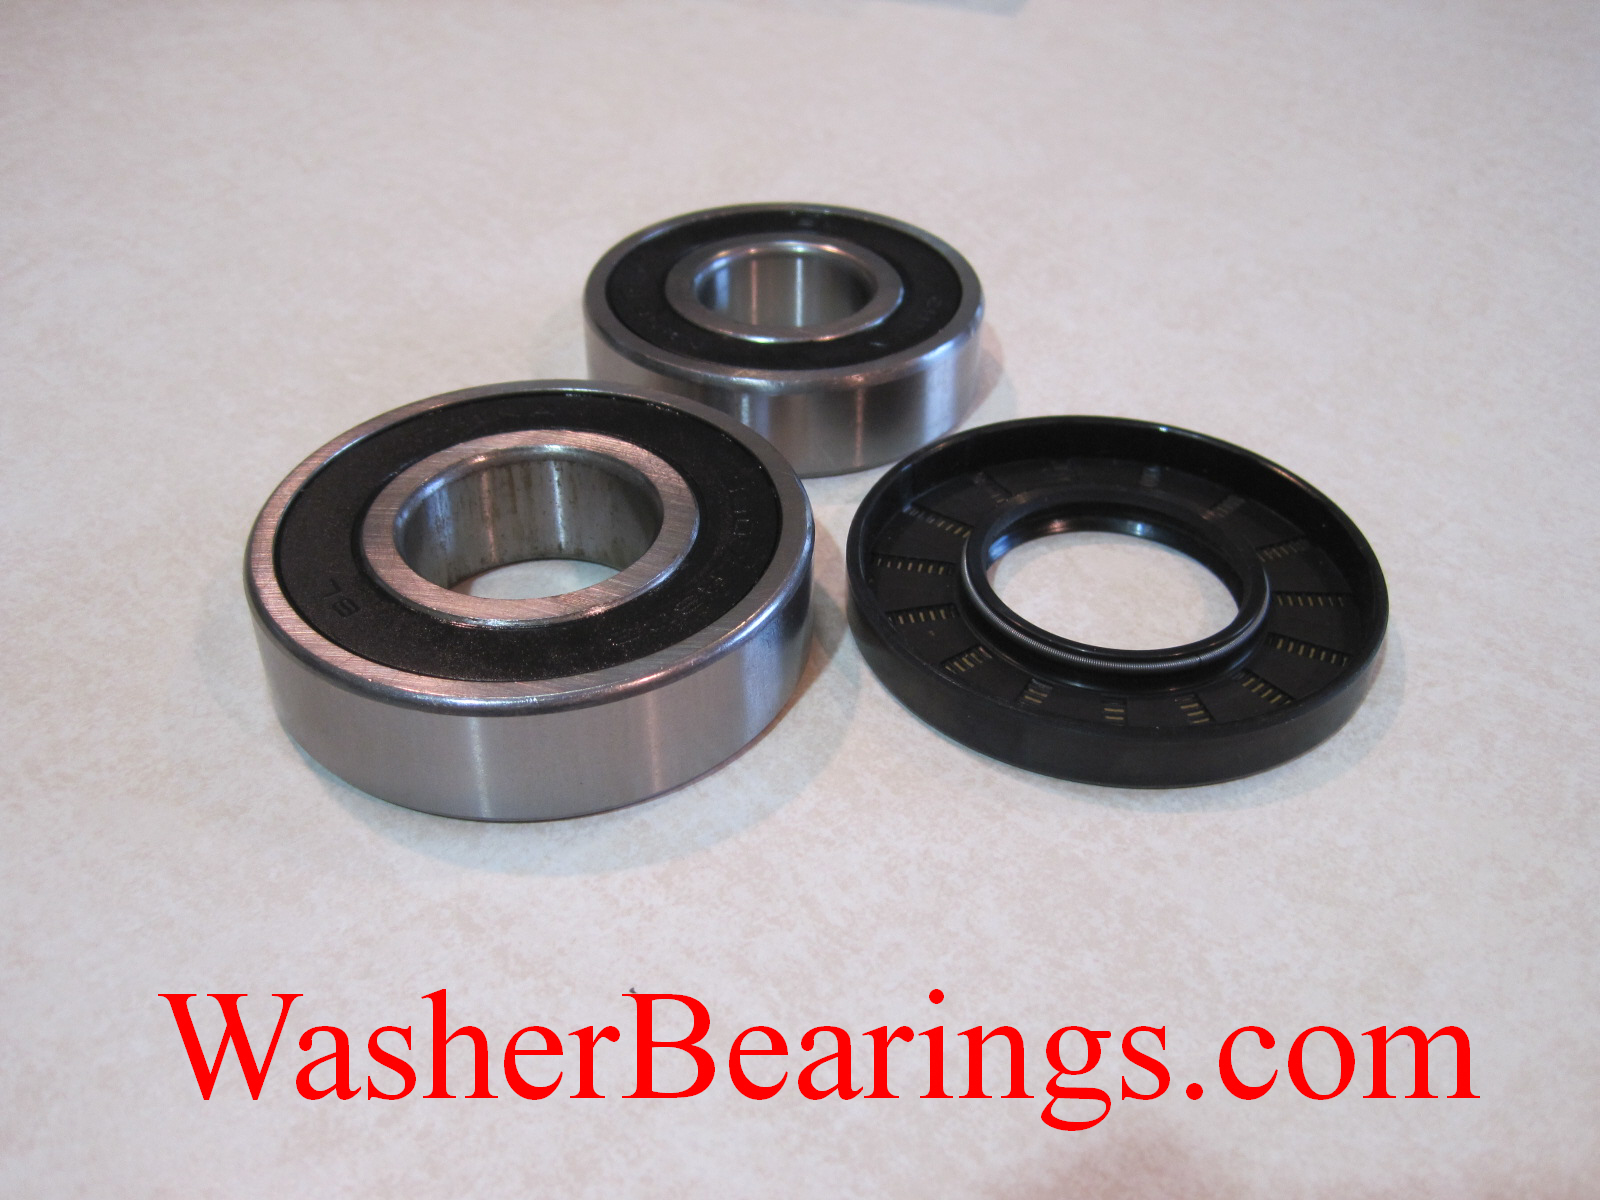 Ghw9100lw2 Bearing Replacement Maytag Neptune Washer Repair